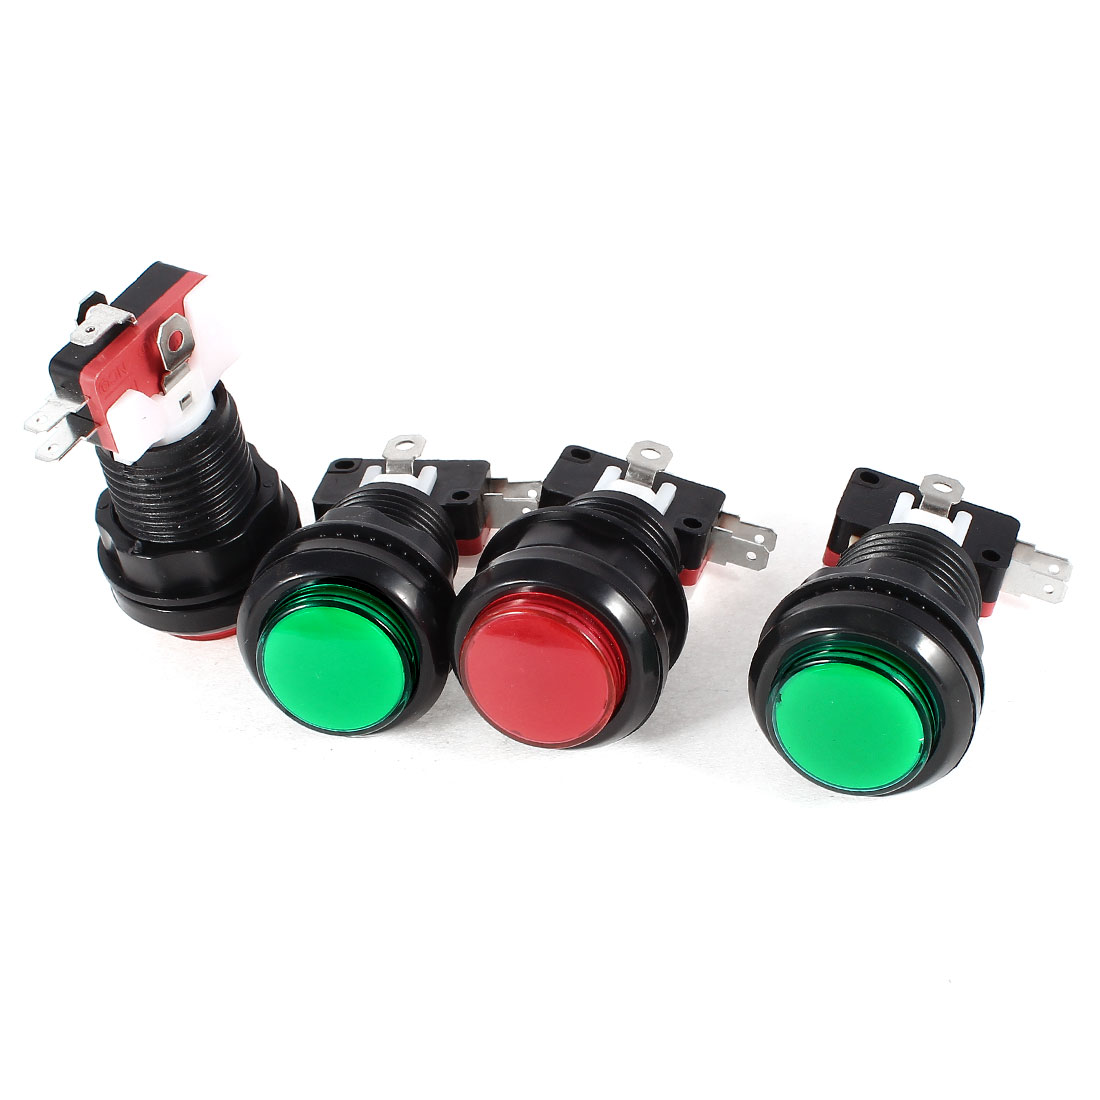 4 Pcs Panel Mount 3Pin SPDT NC Green Red Push Button Momentary Switch AC 100-240V